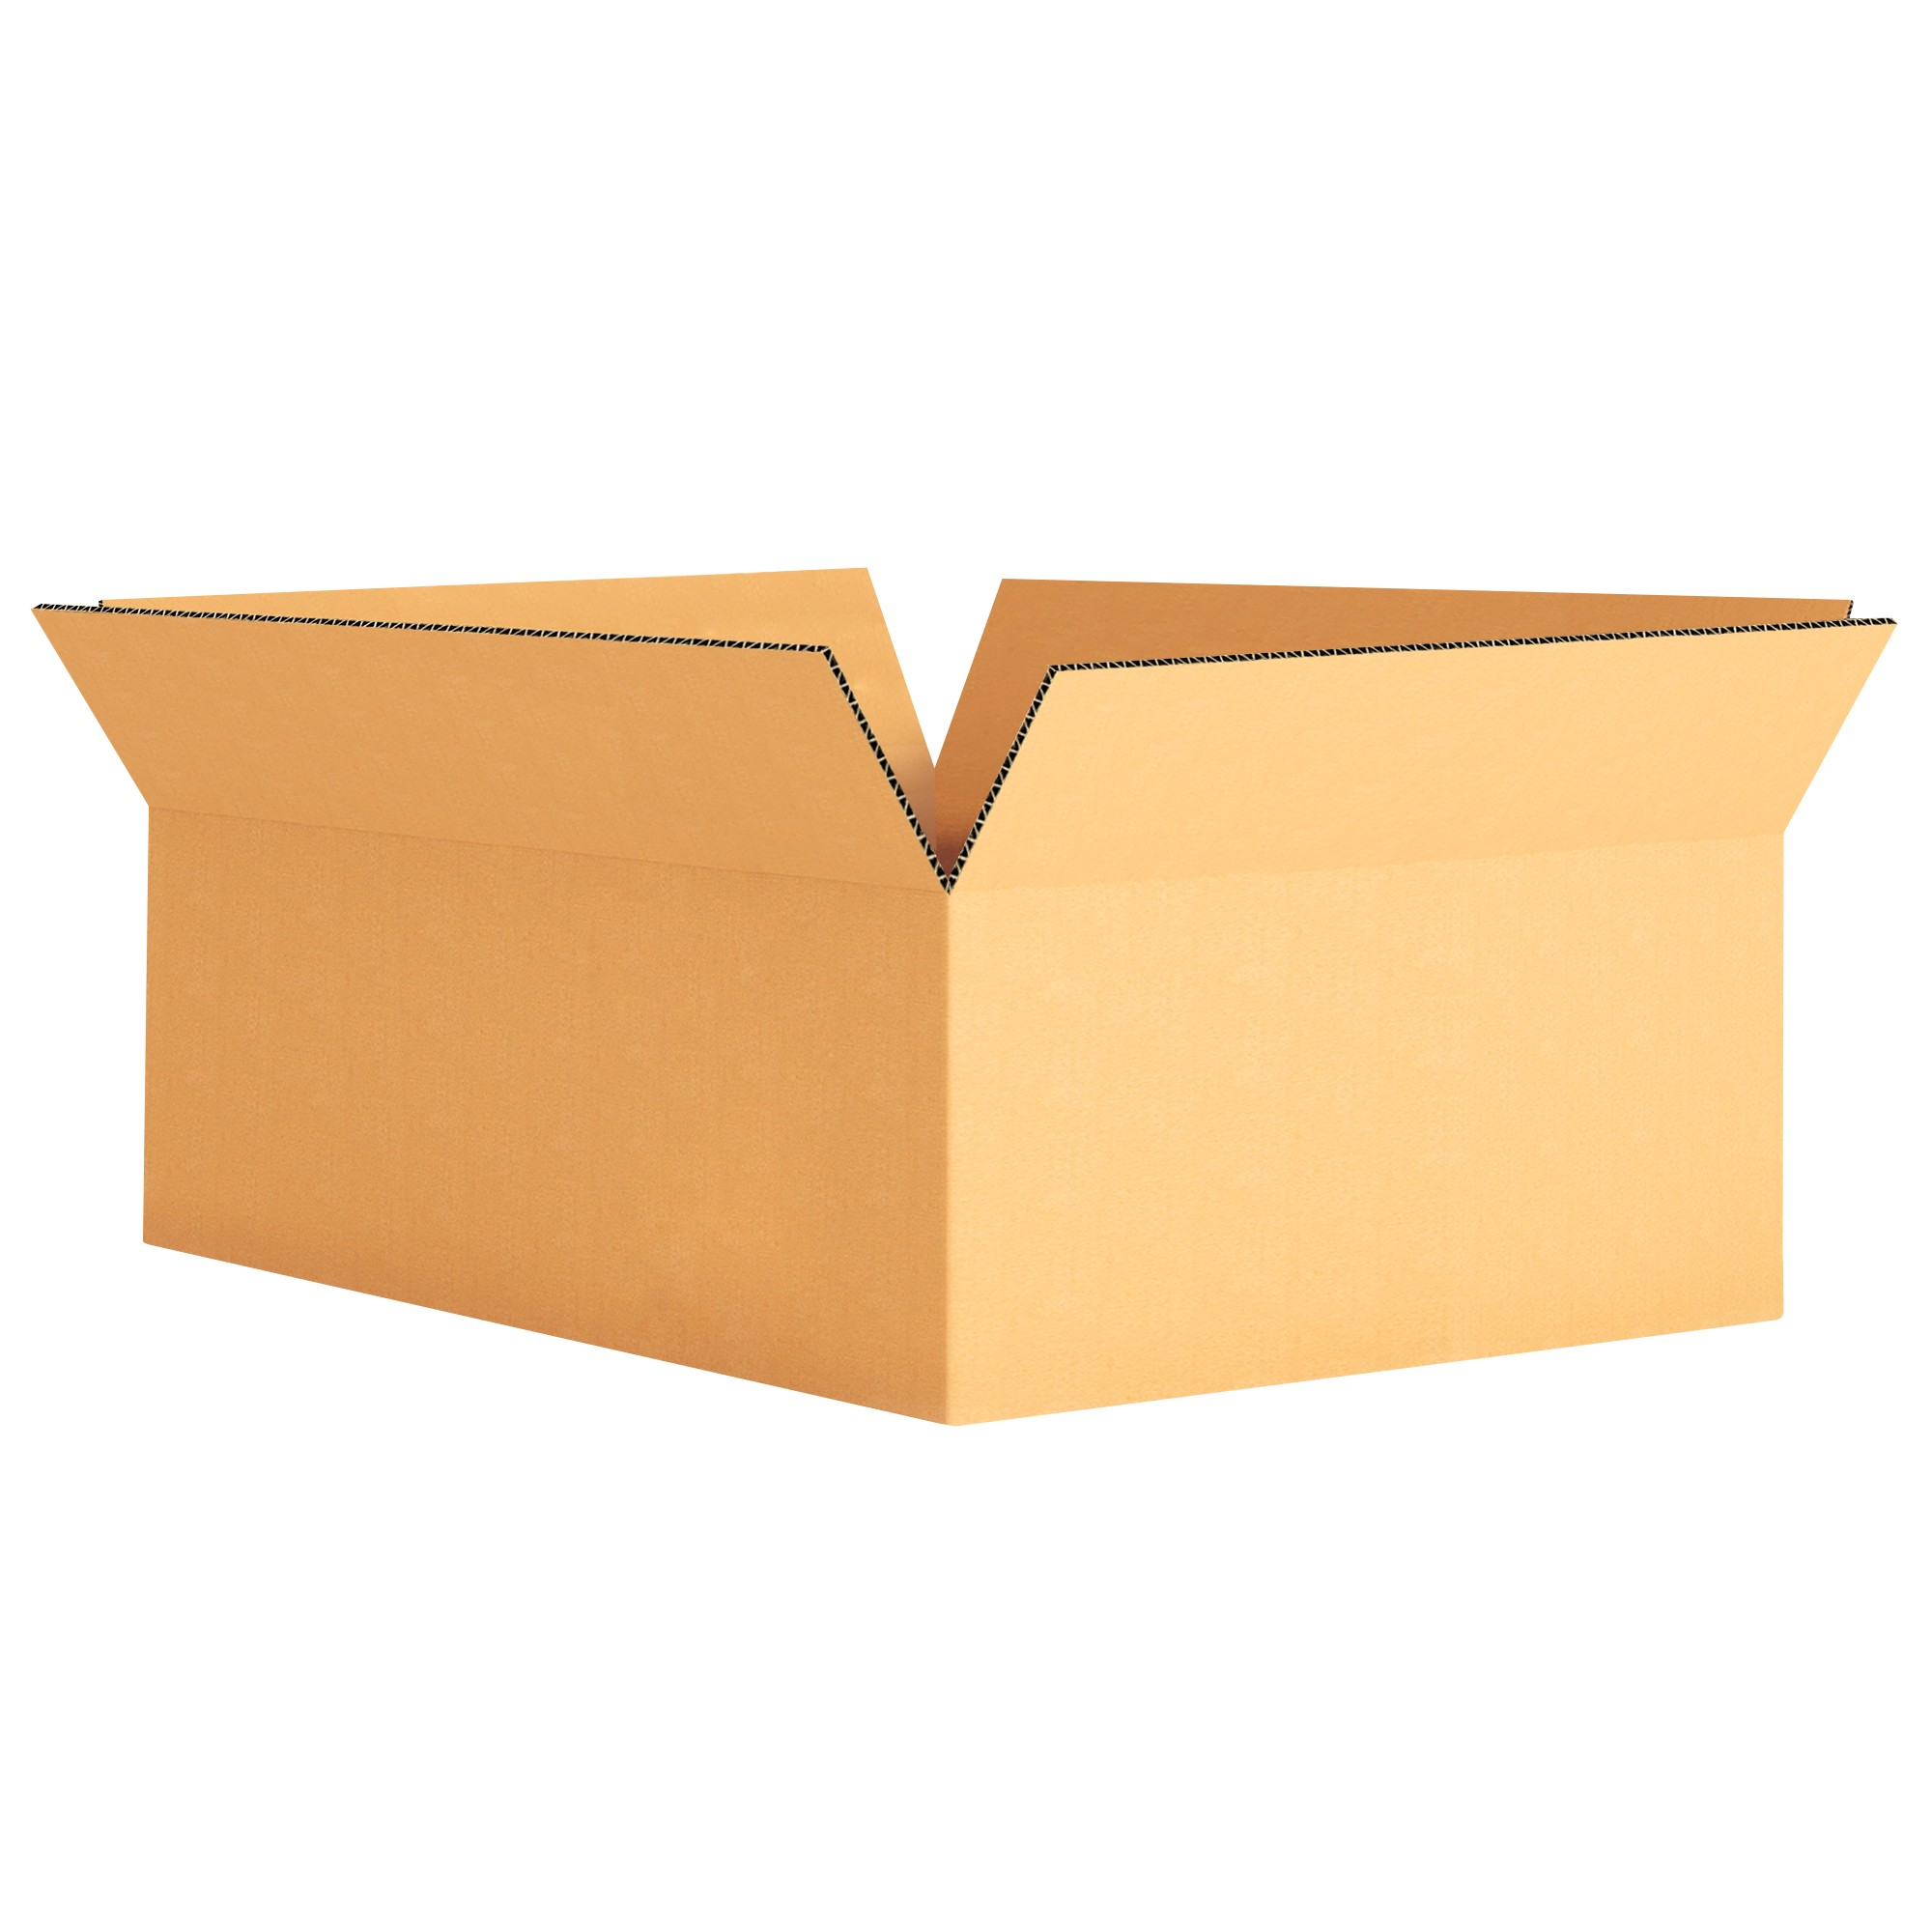 "TOTALPACK® 12 x 9 x 4"" Single Wall Corrugated Boxes 25 Units"